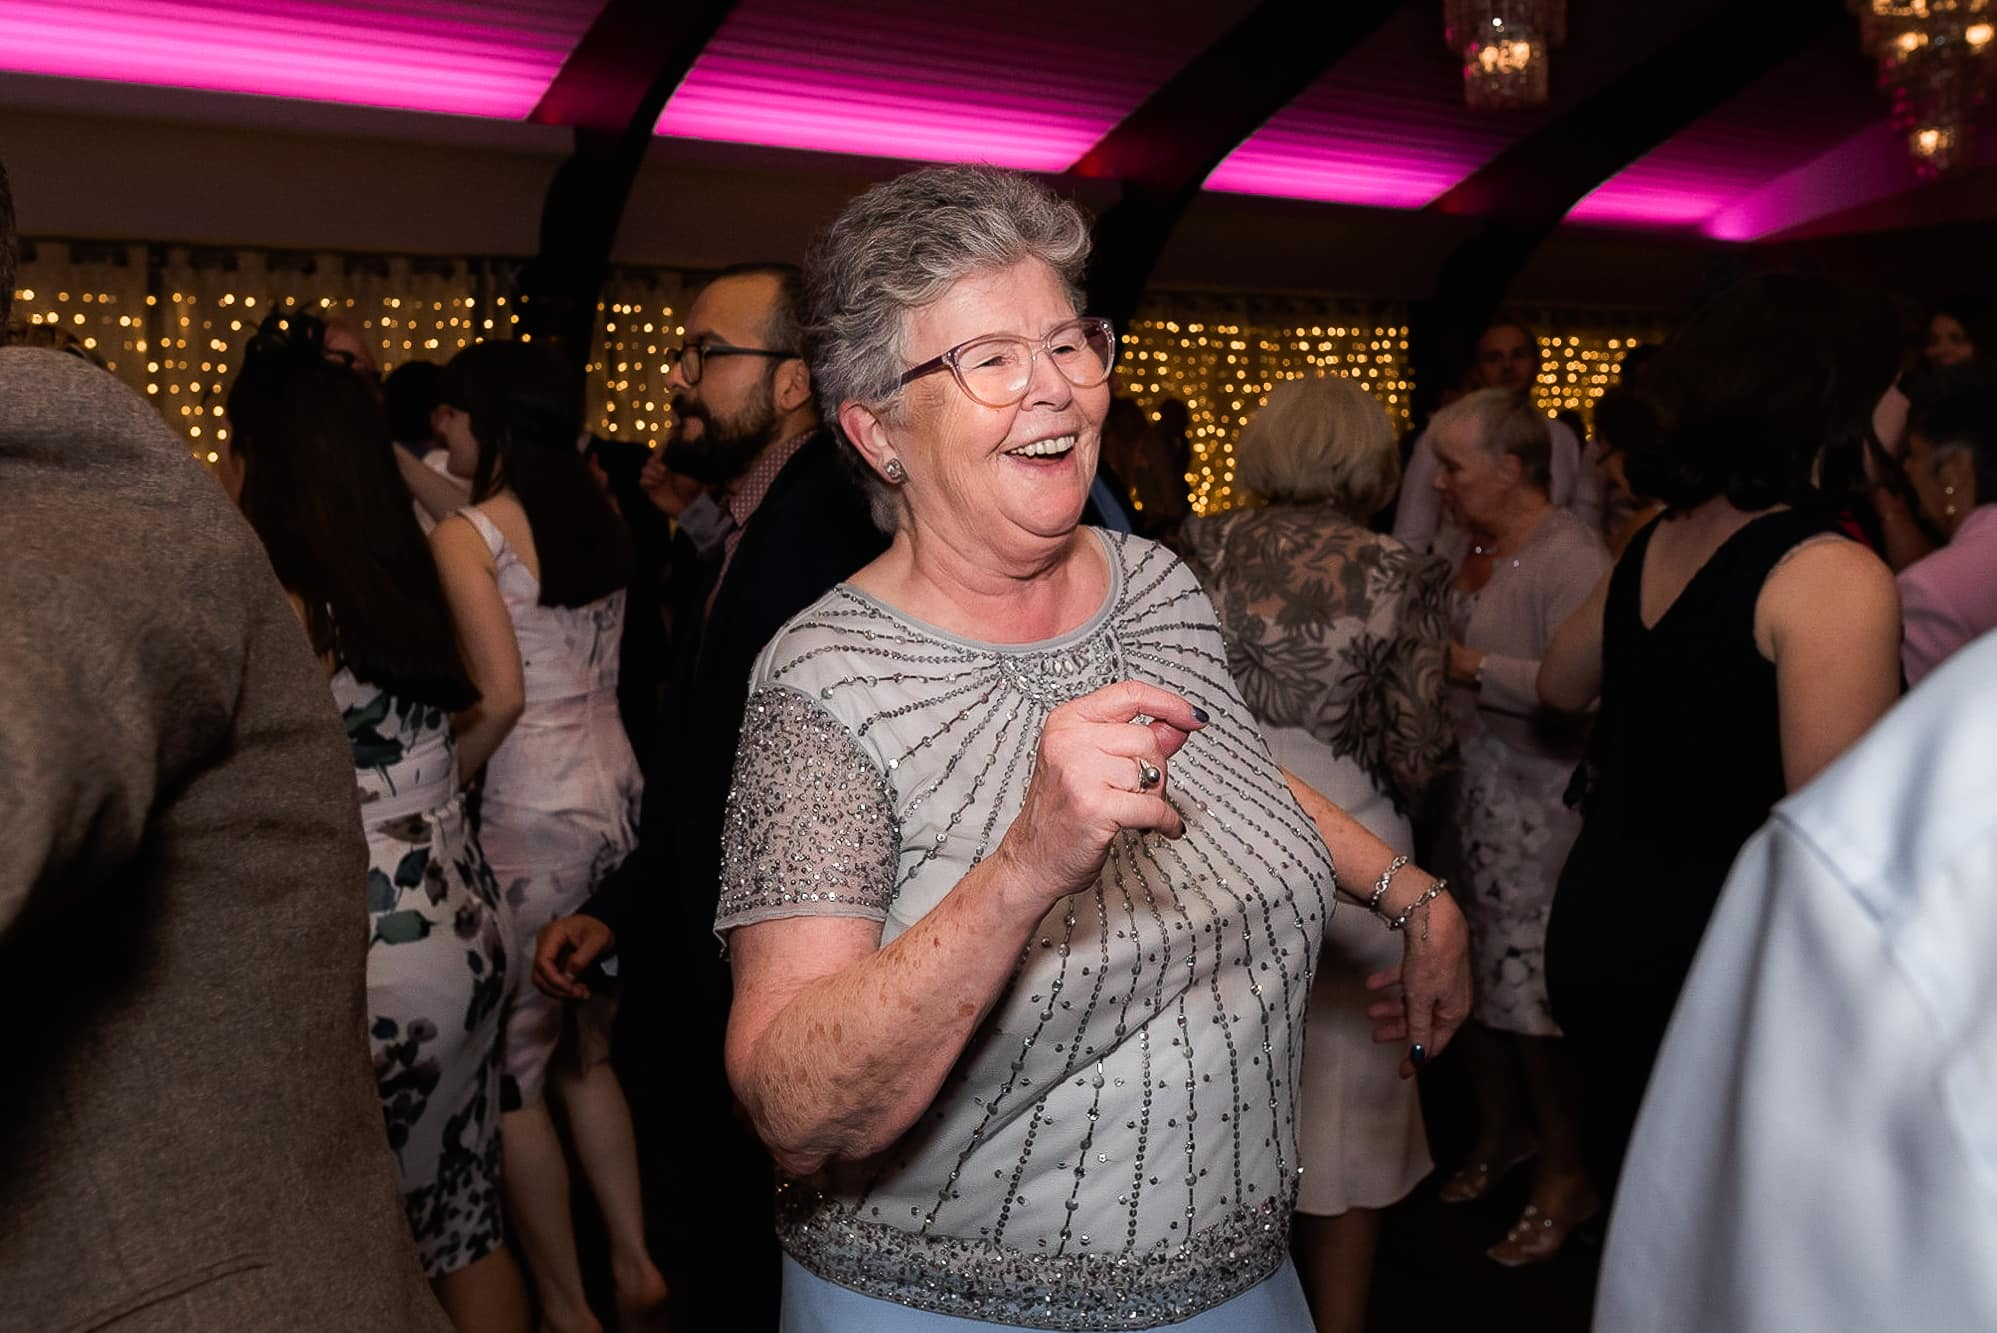 Gran dancing at Colshaw Hall